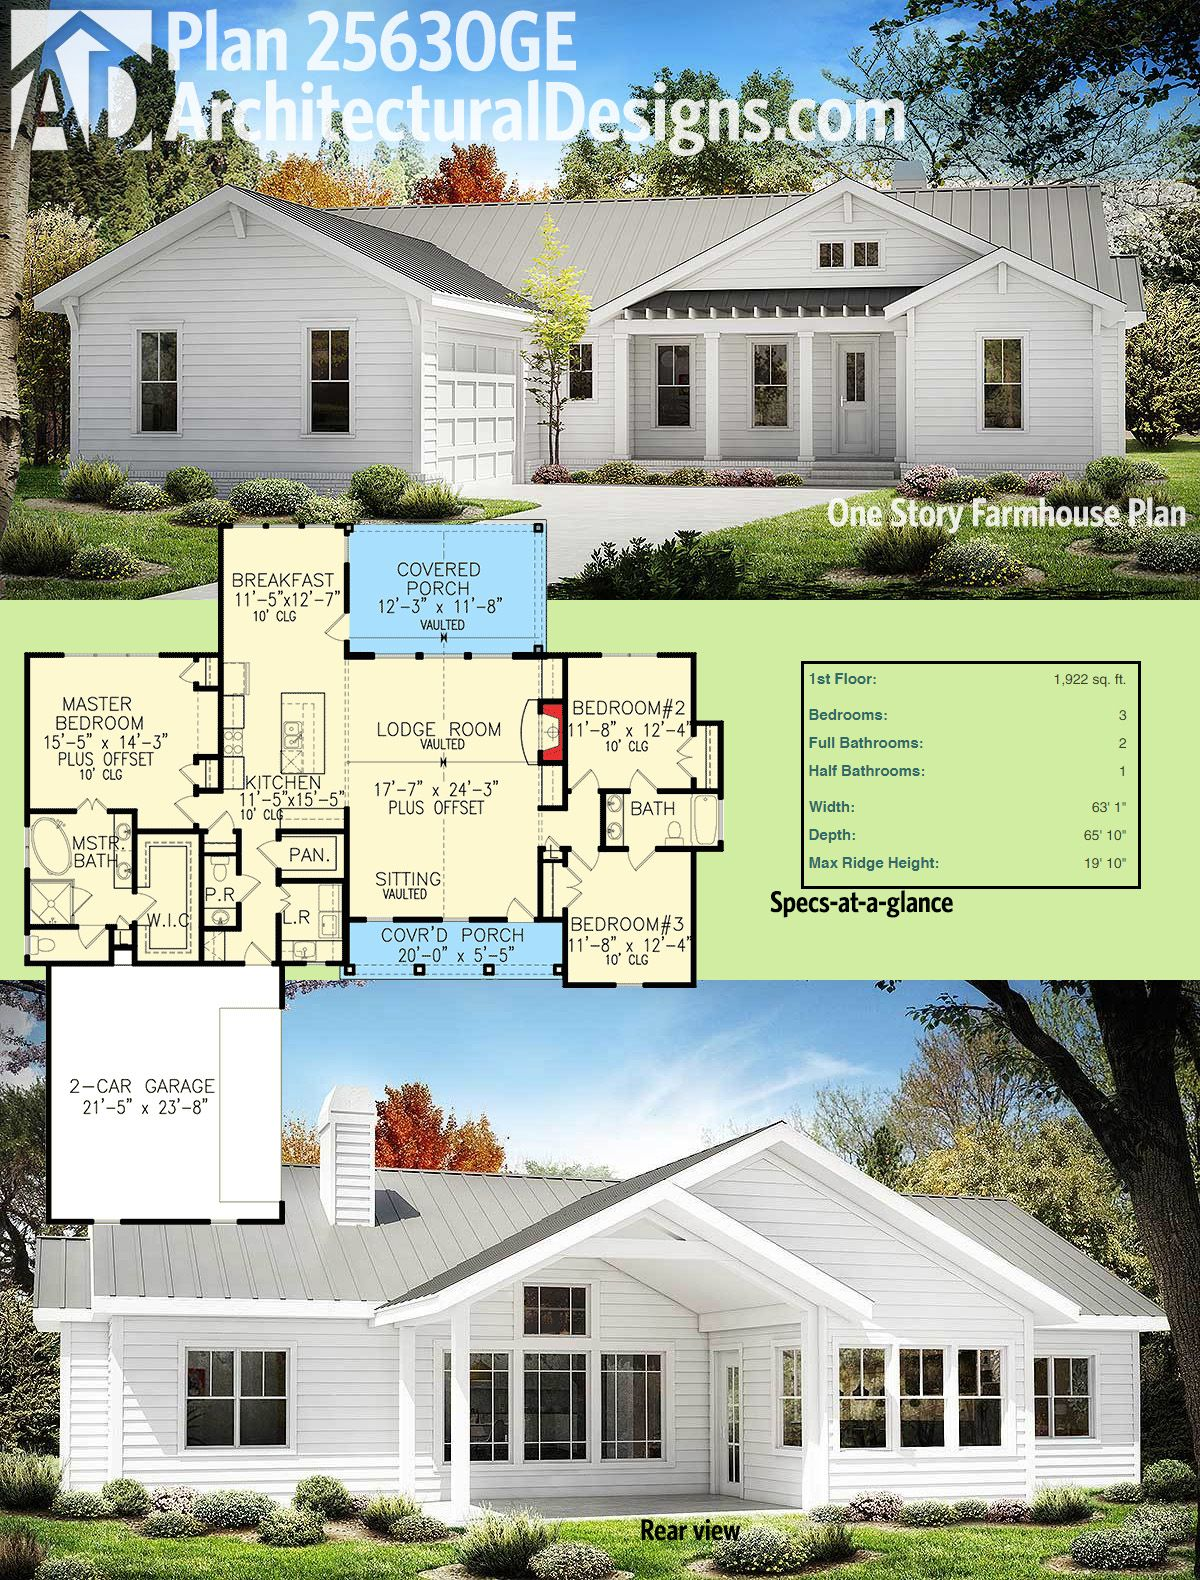 Architectural Designs One Story Modern Farmhouse Plan